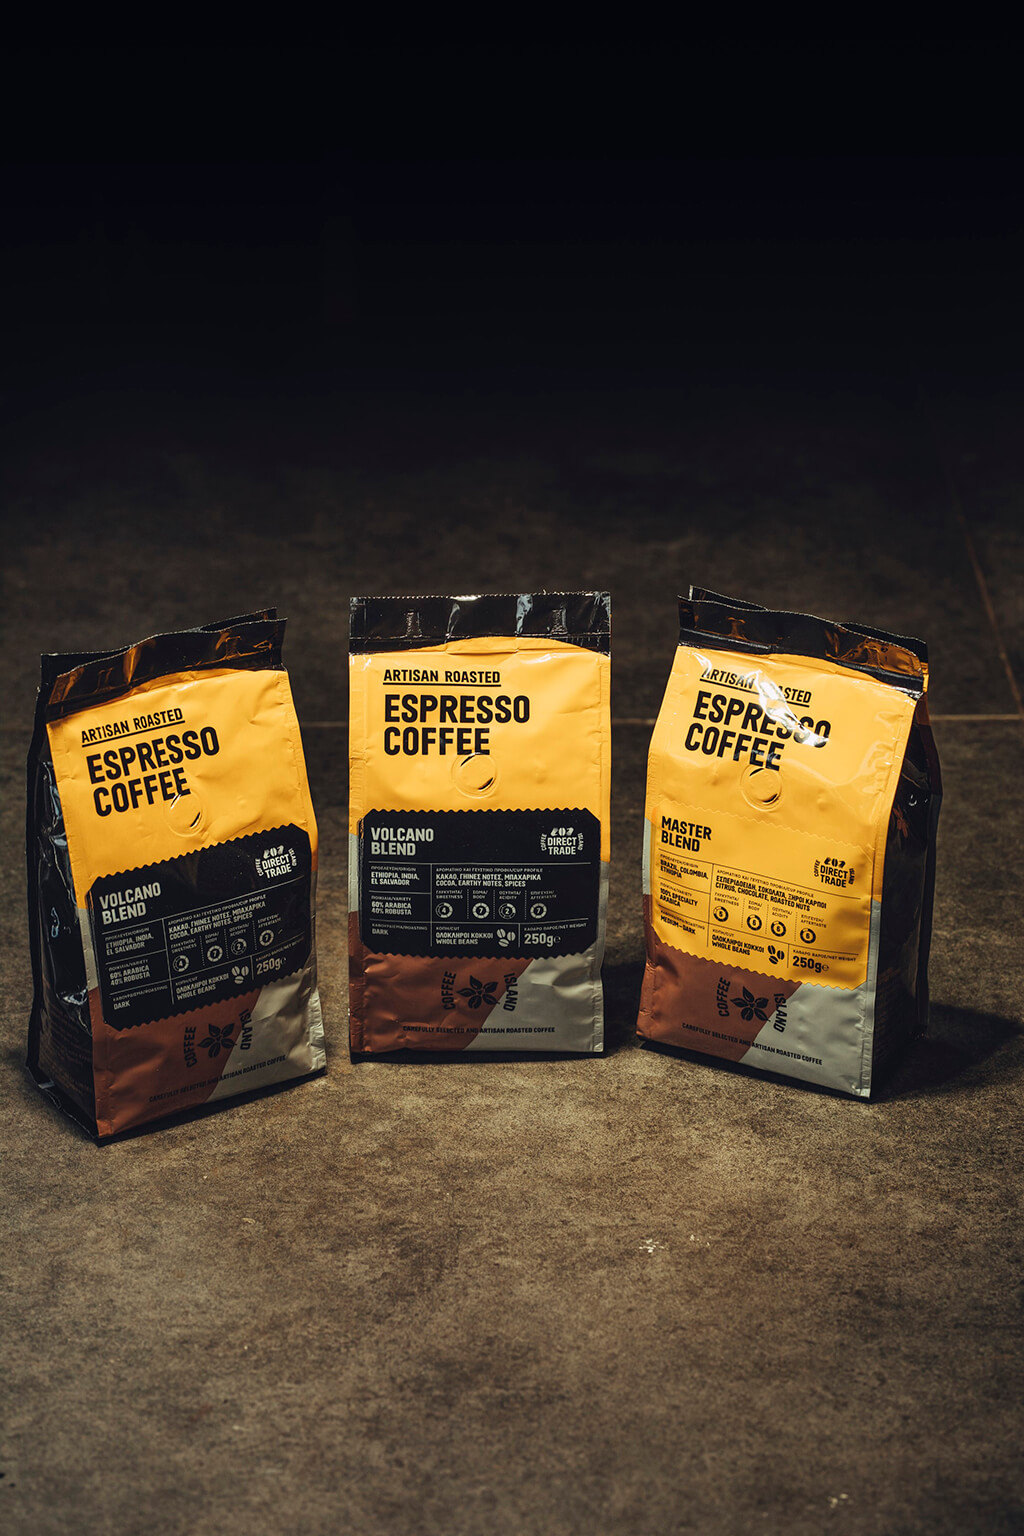 Coffee Island's espresso coffee package